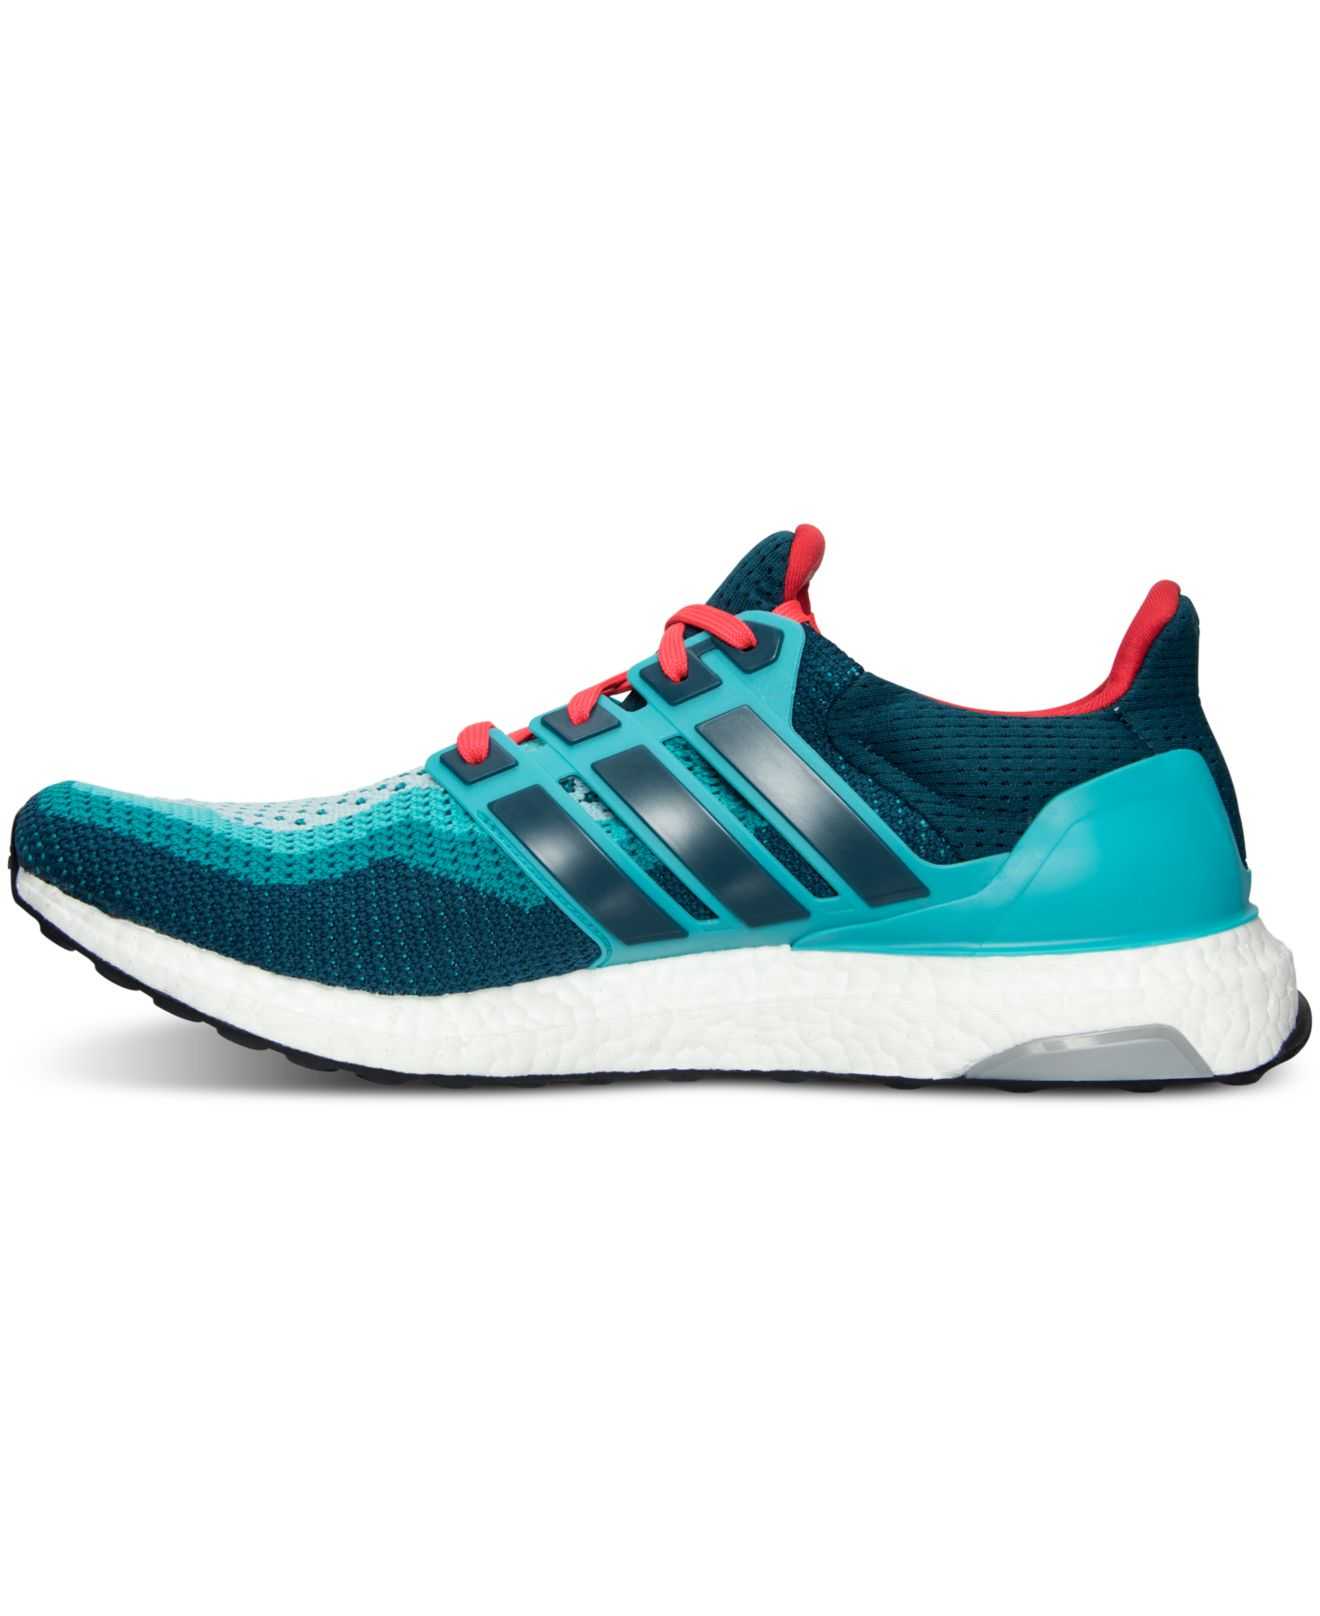 ada8d7b68b217 wholesale 160623adidasub305finalsmall 03d06 9ceb6  closeout gallery.  previously sold at macys mens adidas ultra boost 015e6 a8ab2